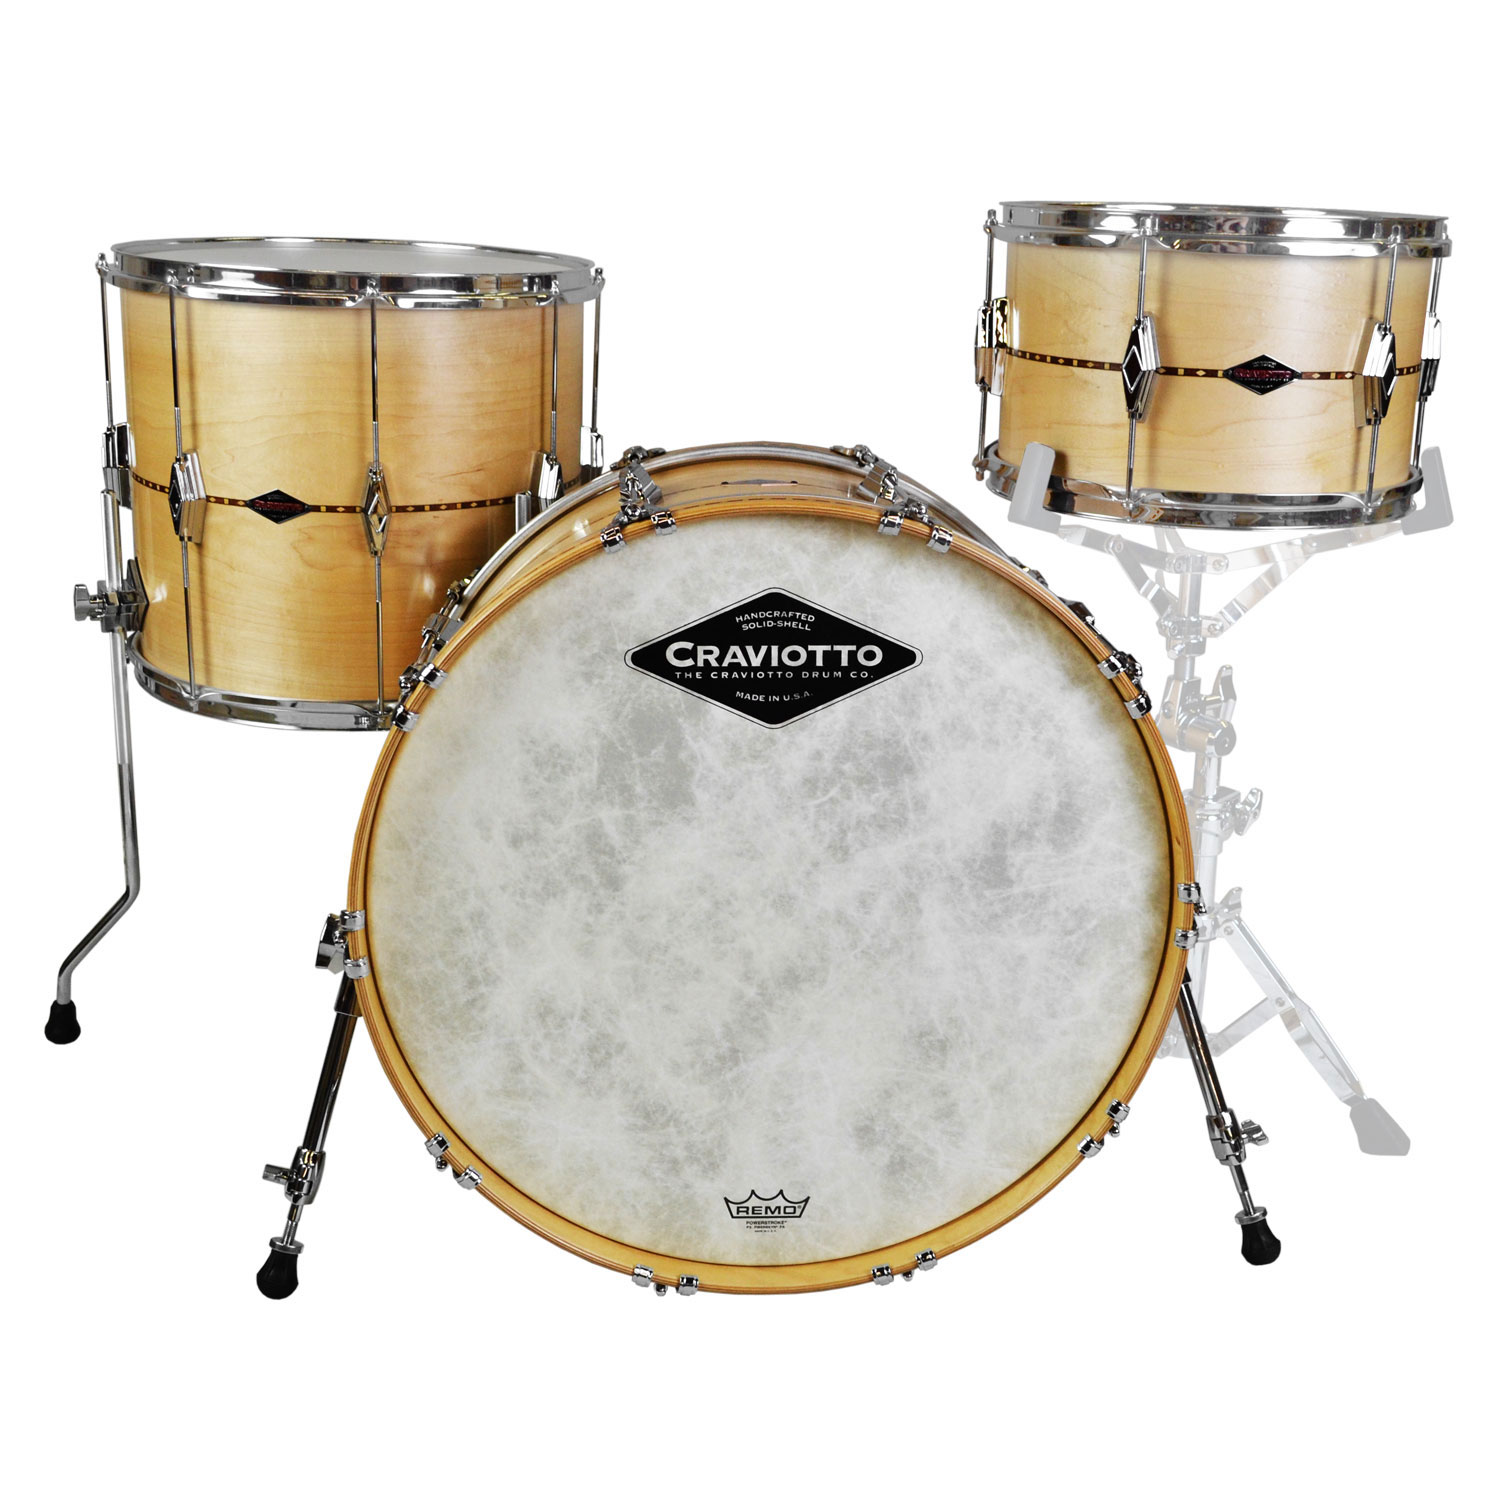 "Craviotto Center Stage Solid Maple 3-Piece Drum Set Shell Pack (22"" Bass, 13/16"" Toms) with Walnut Inlays"